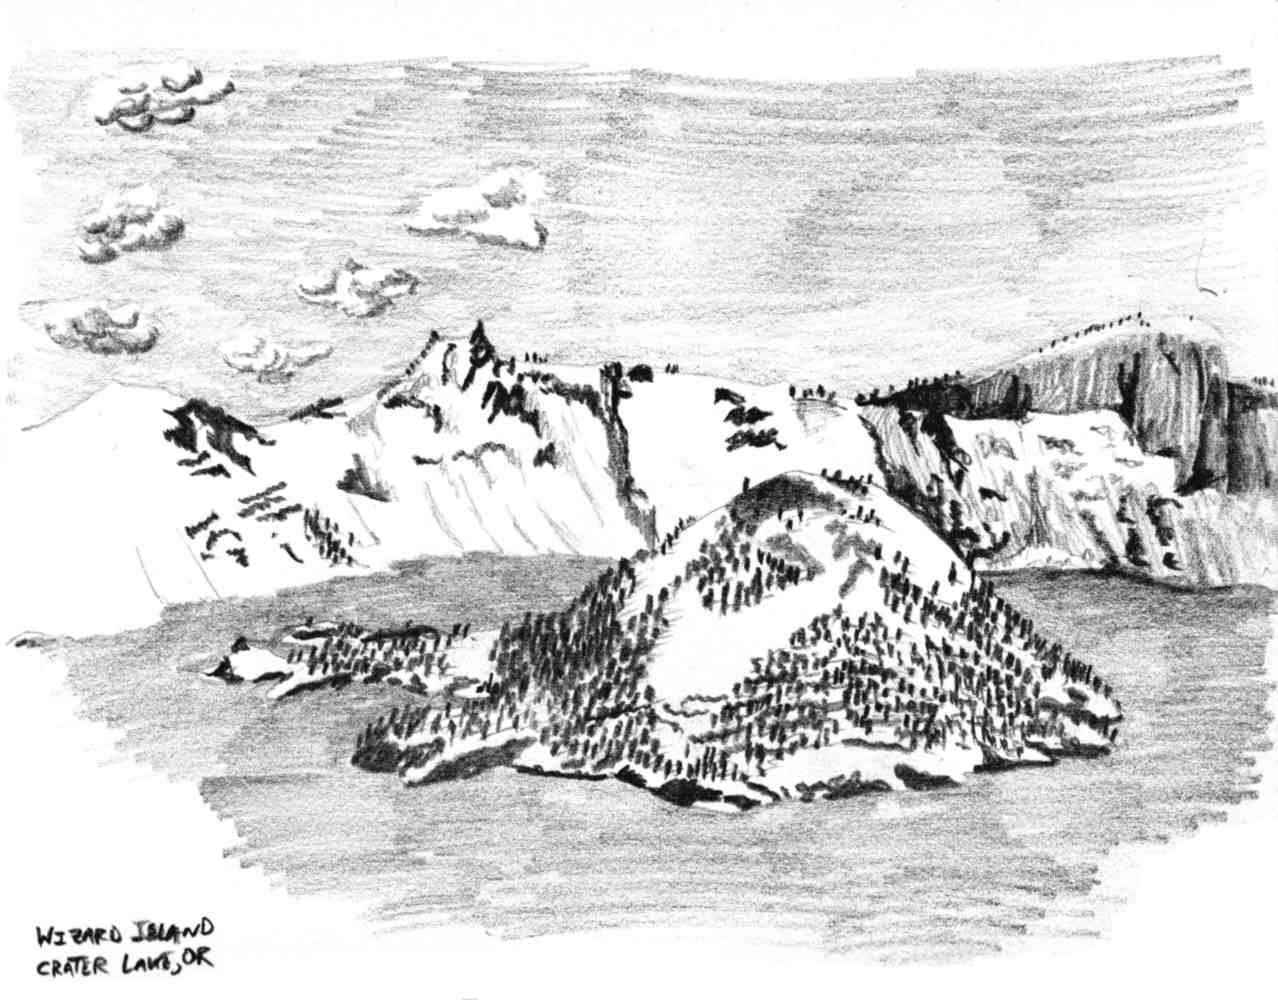 Charcoal drawing of Wizard Island in Crater Lake National Park